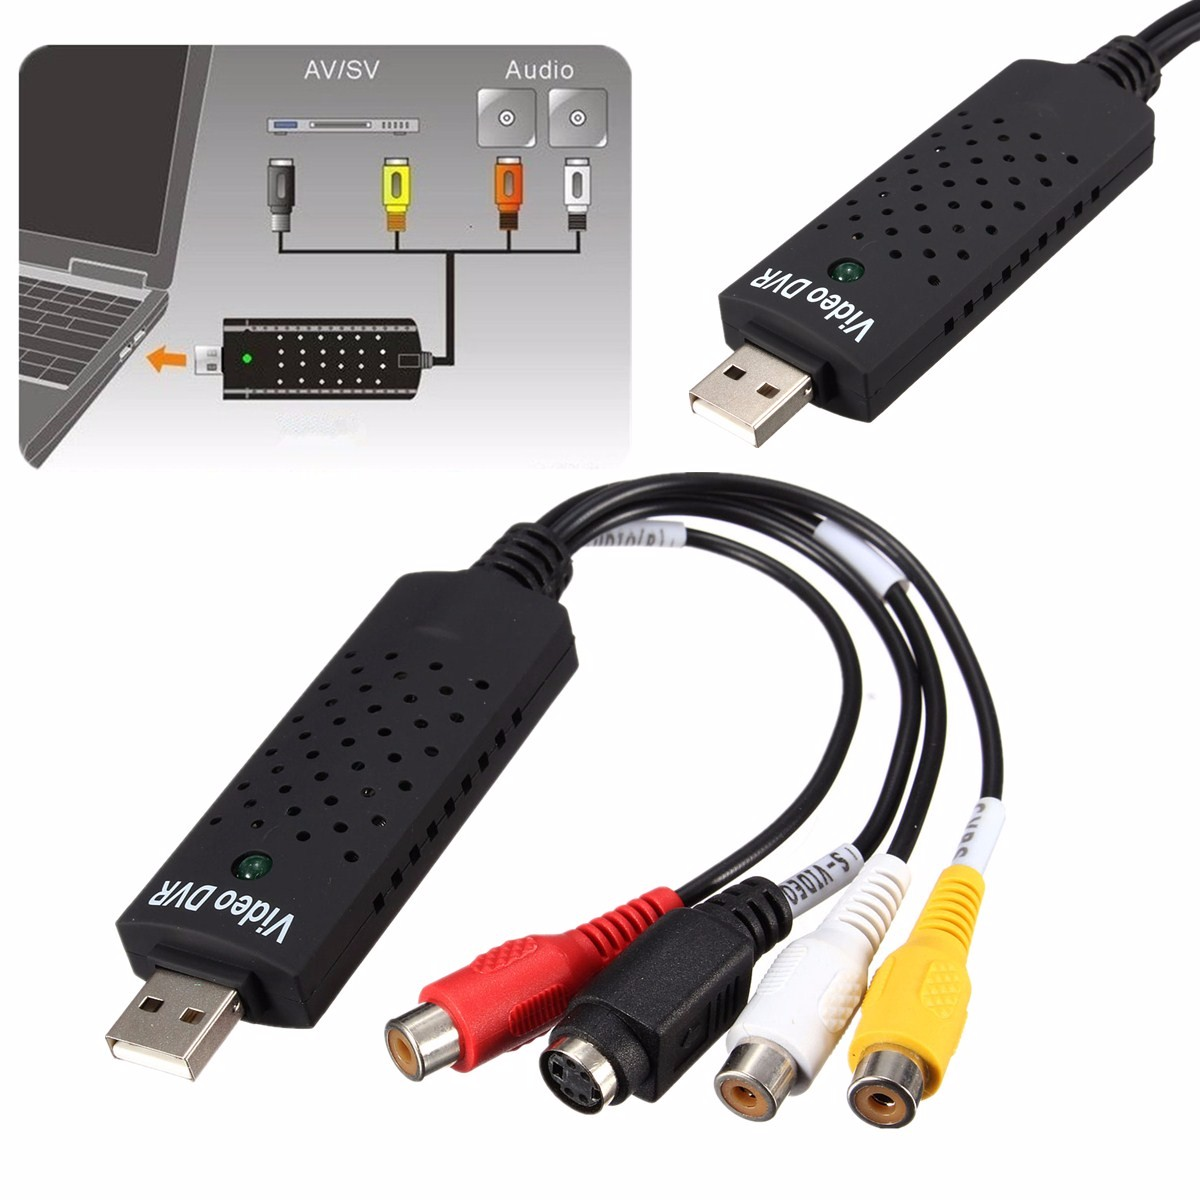 USB 2.0 Video Audio VHS to DVD PC Converter Capture Card Adapter Win 7 8 10